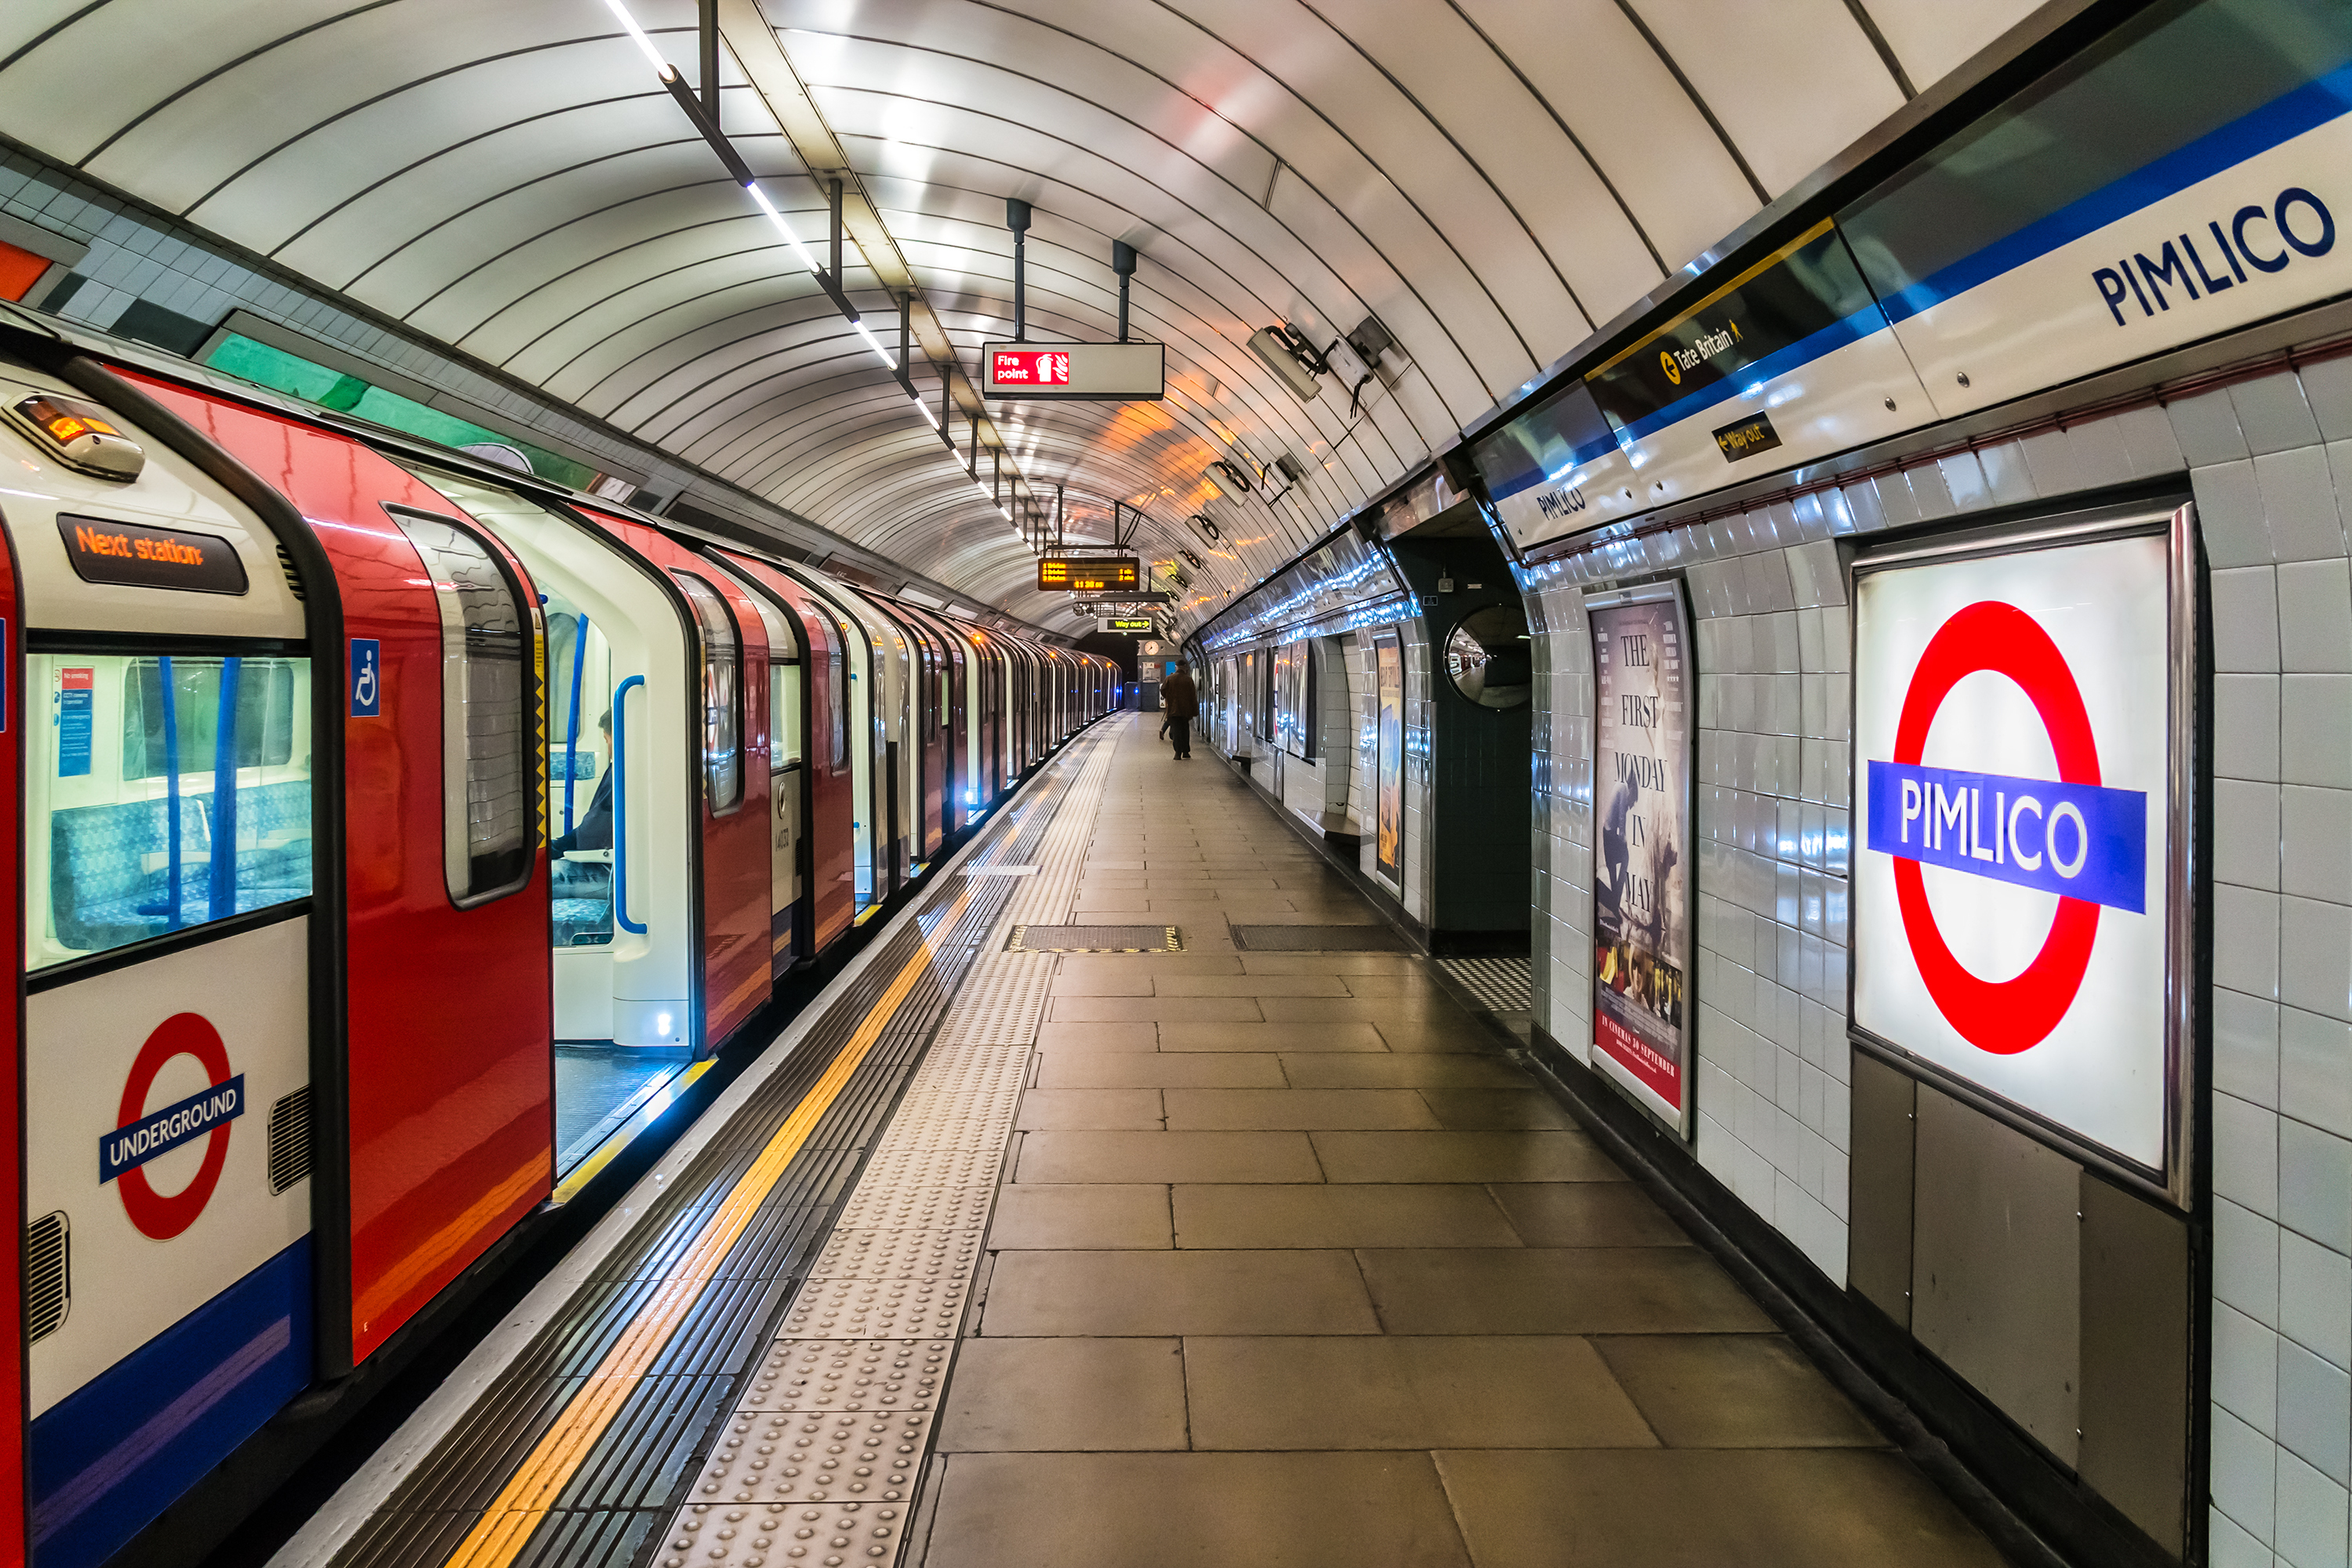 A London subway platform with a train stopped on the track to the left.